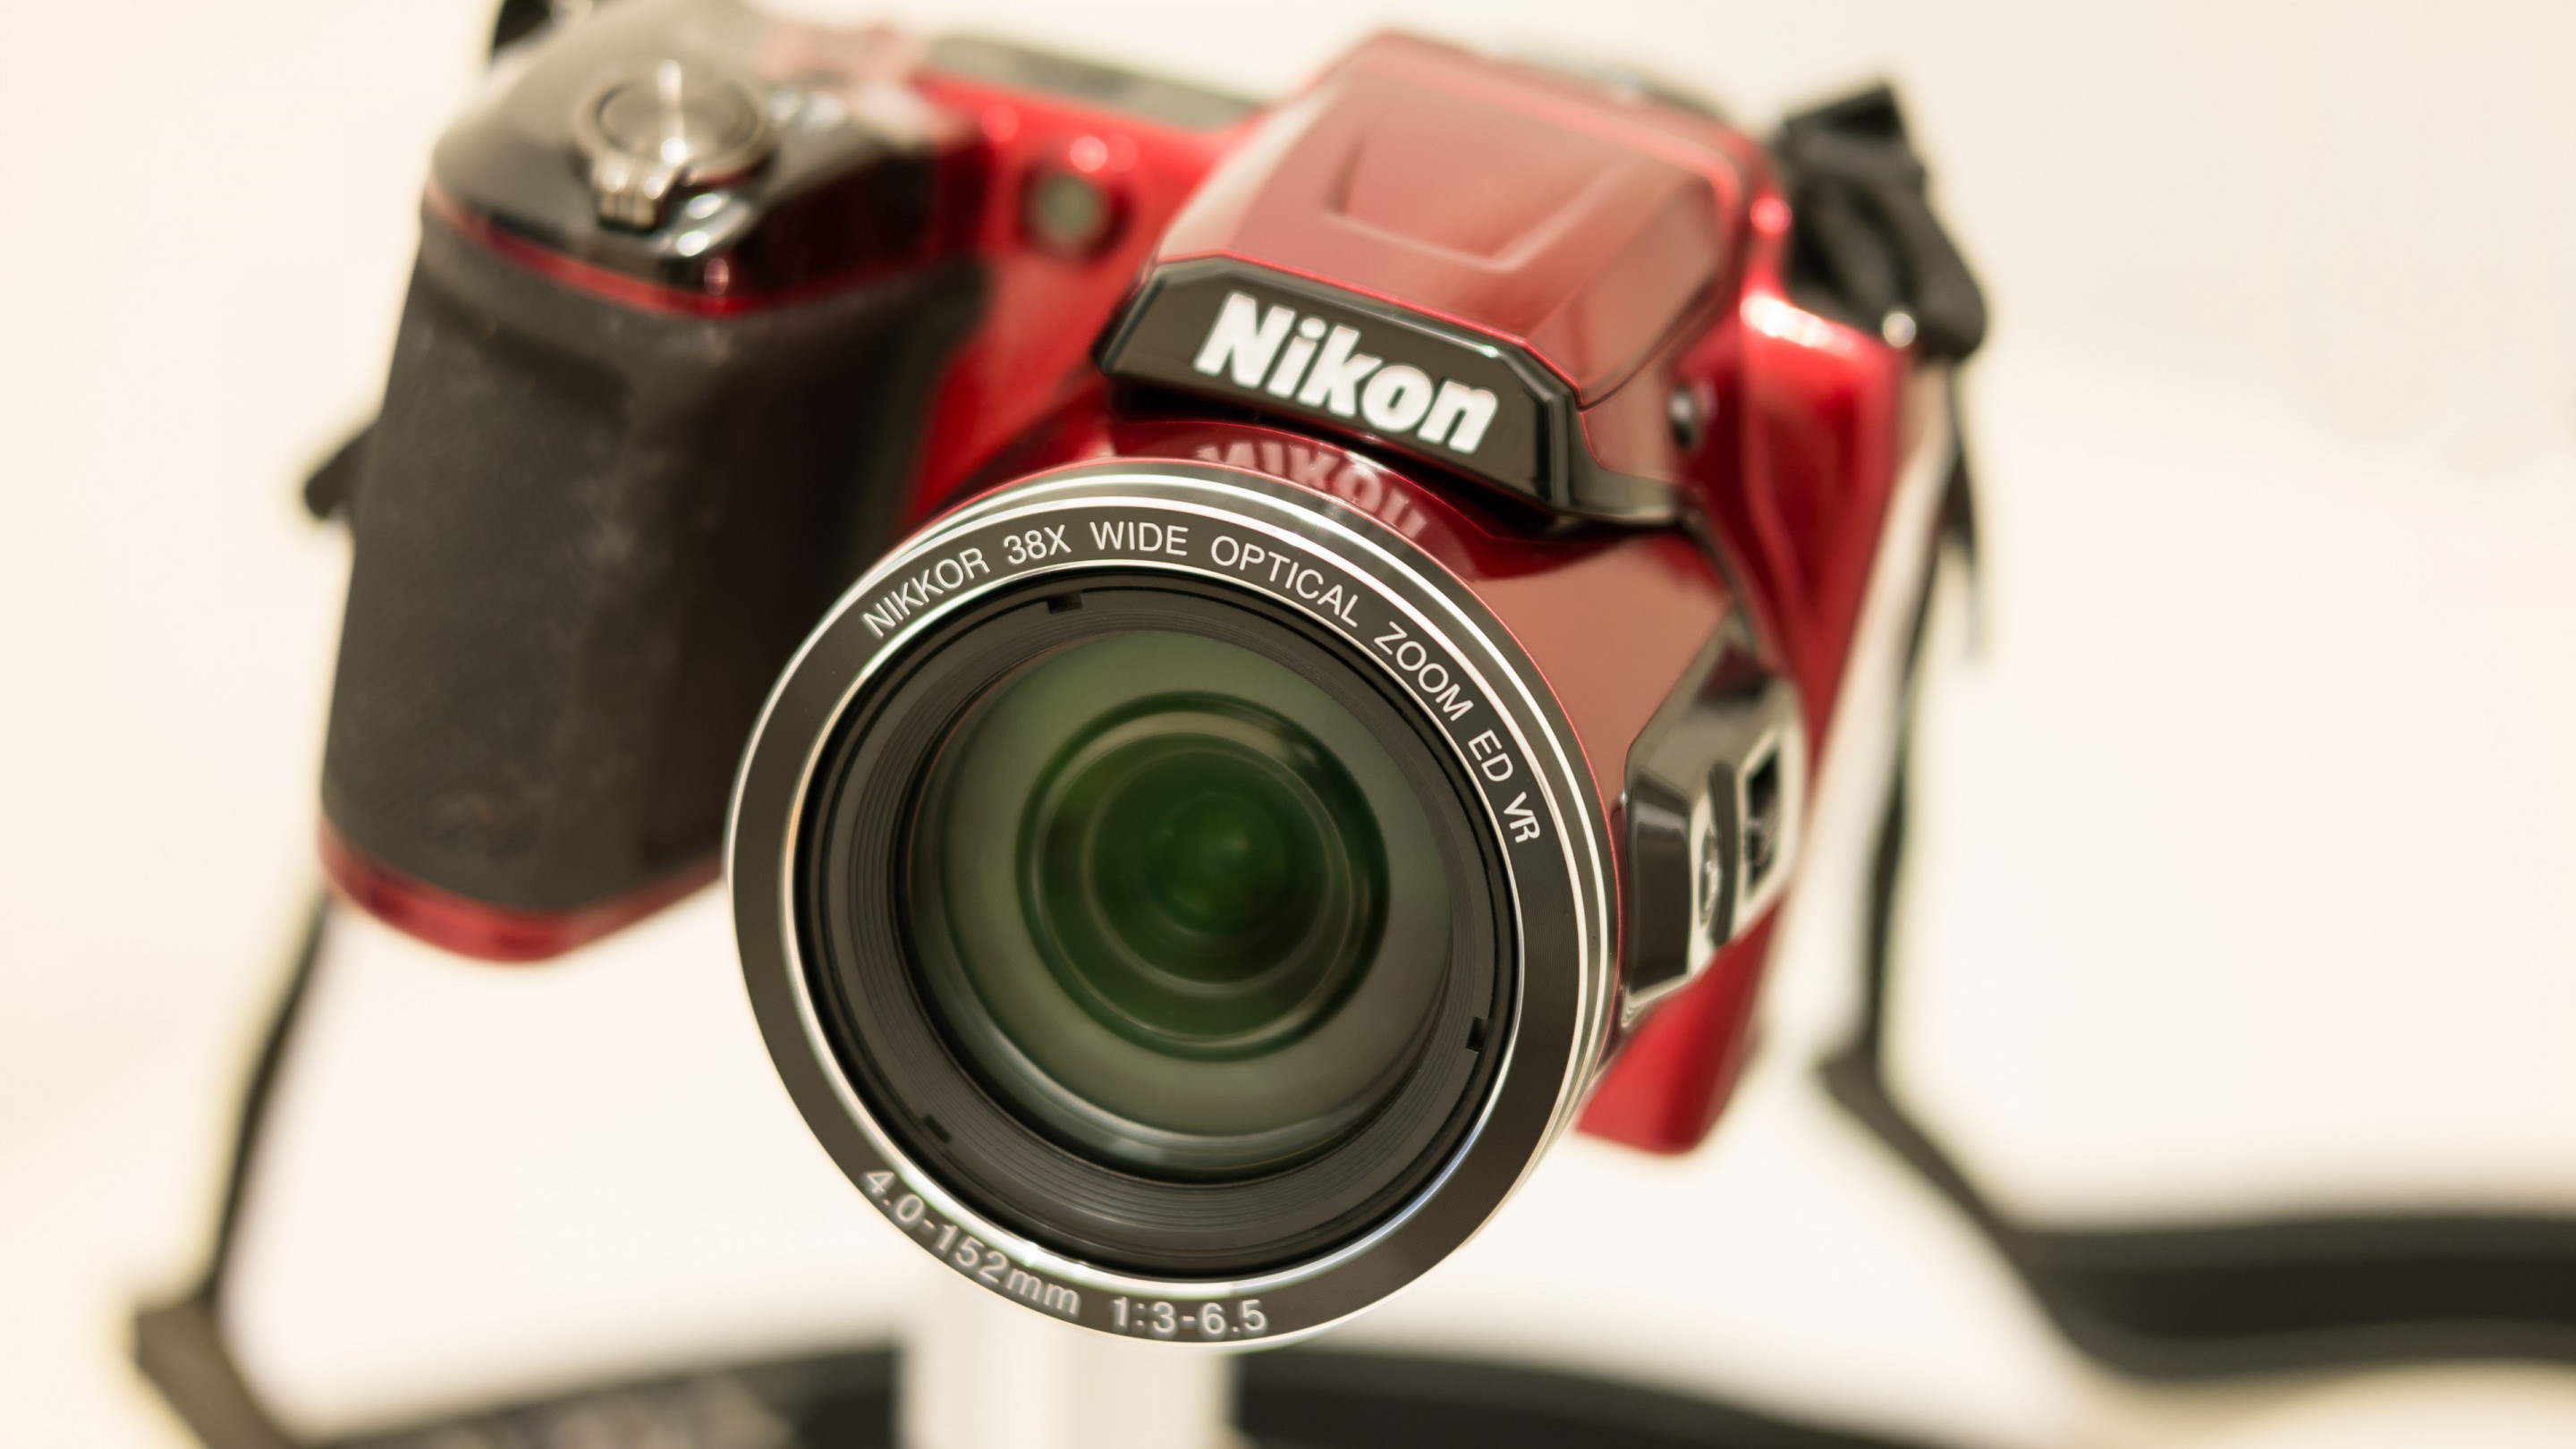 Nikon Camera with Nikkor lens wallpaper 2880x1620